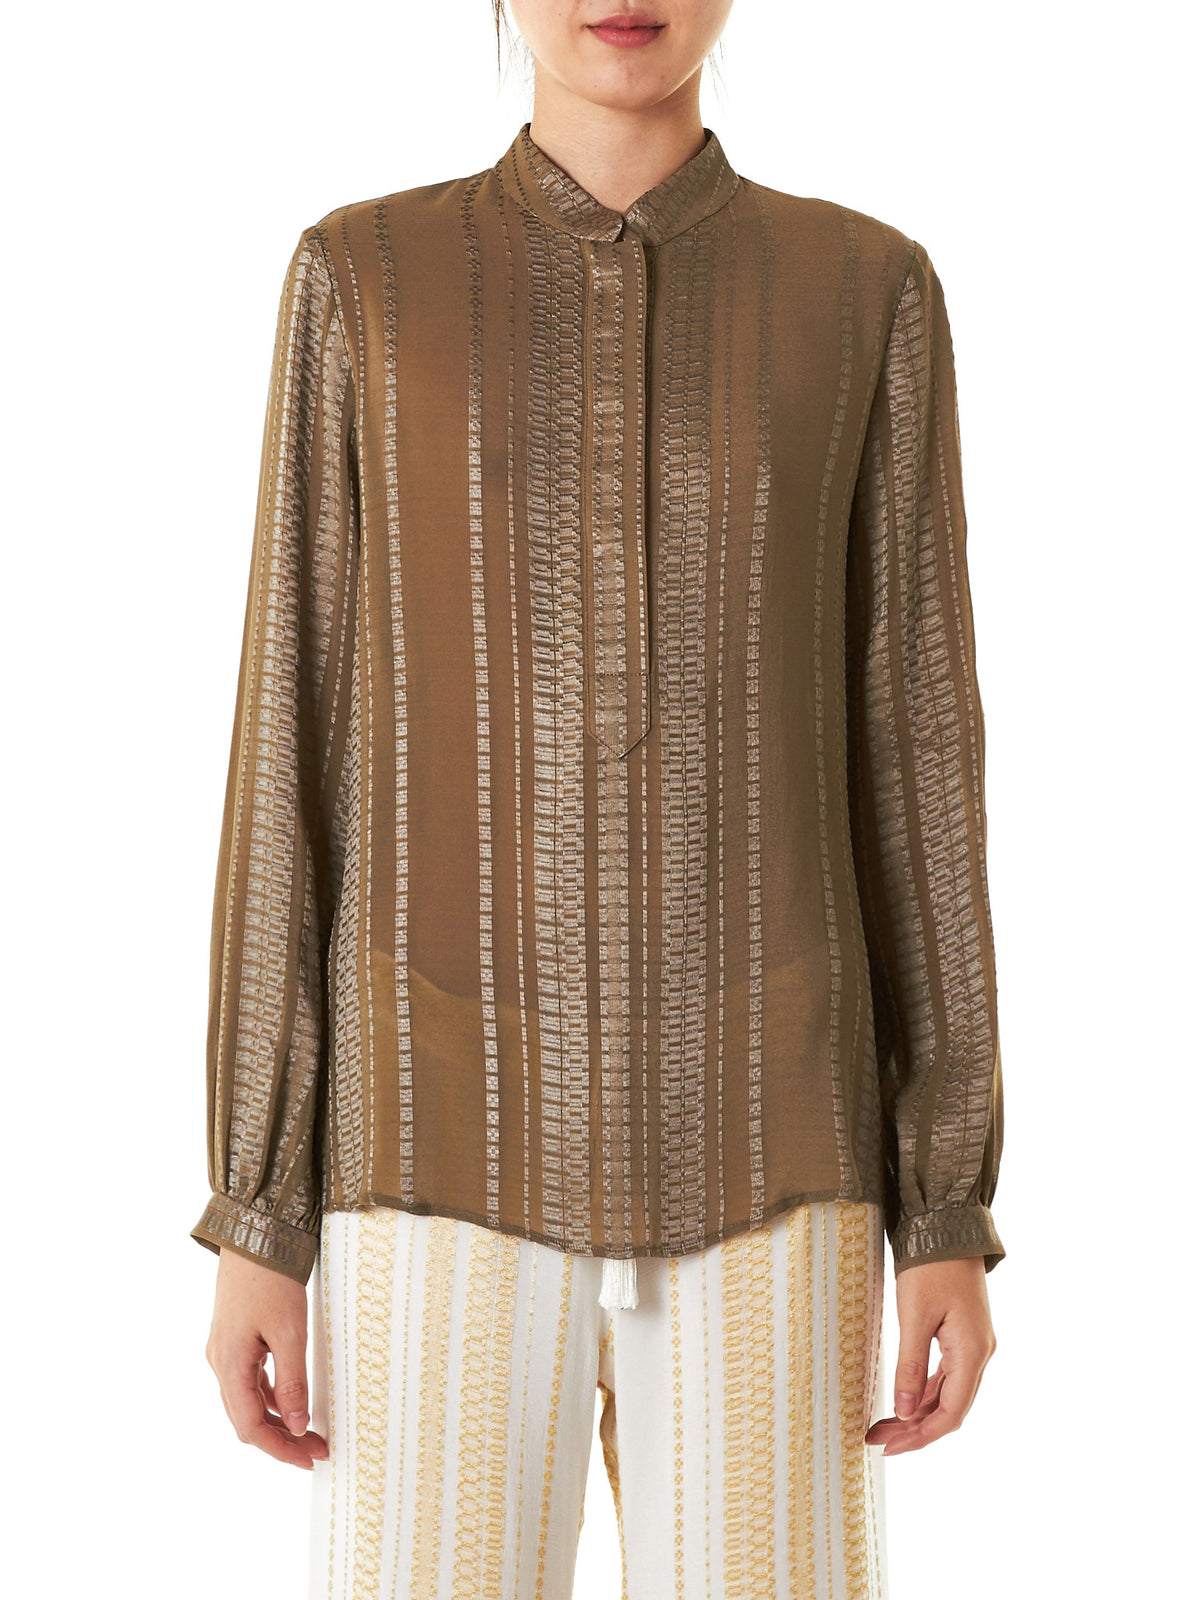 Embroidered Silk Blouse (CLBL096-HERA-011)